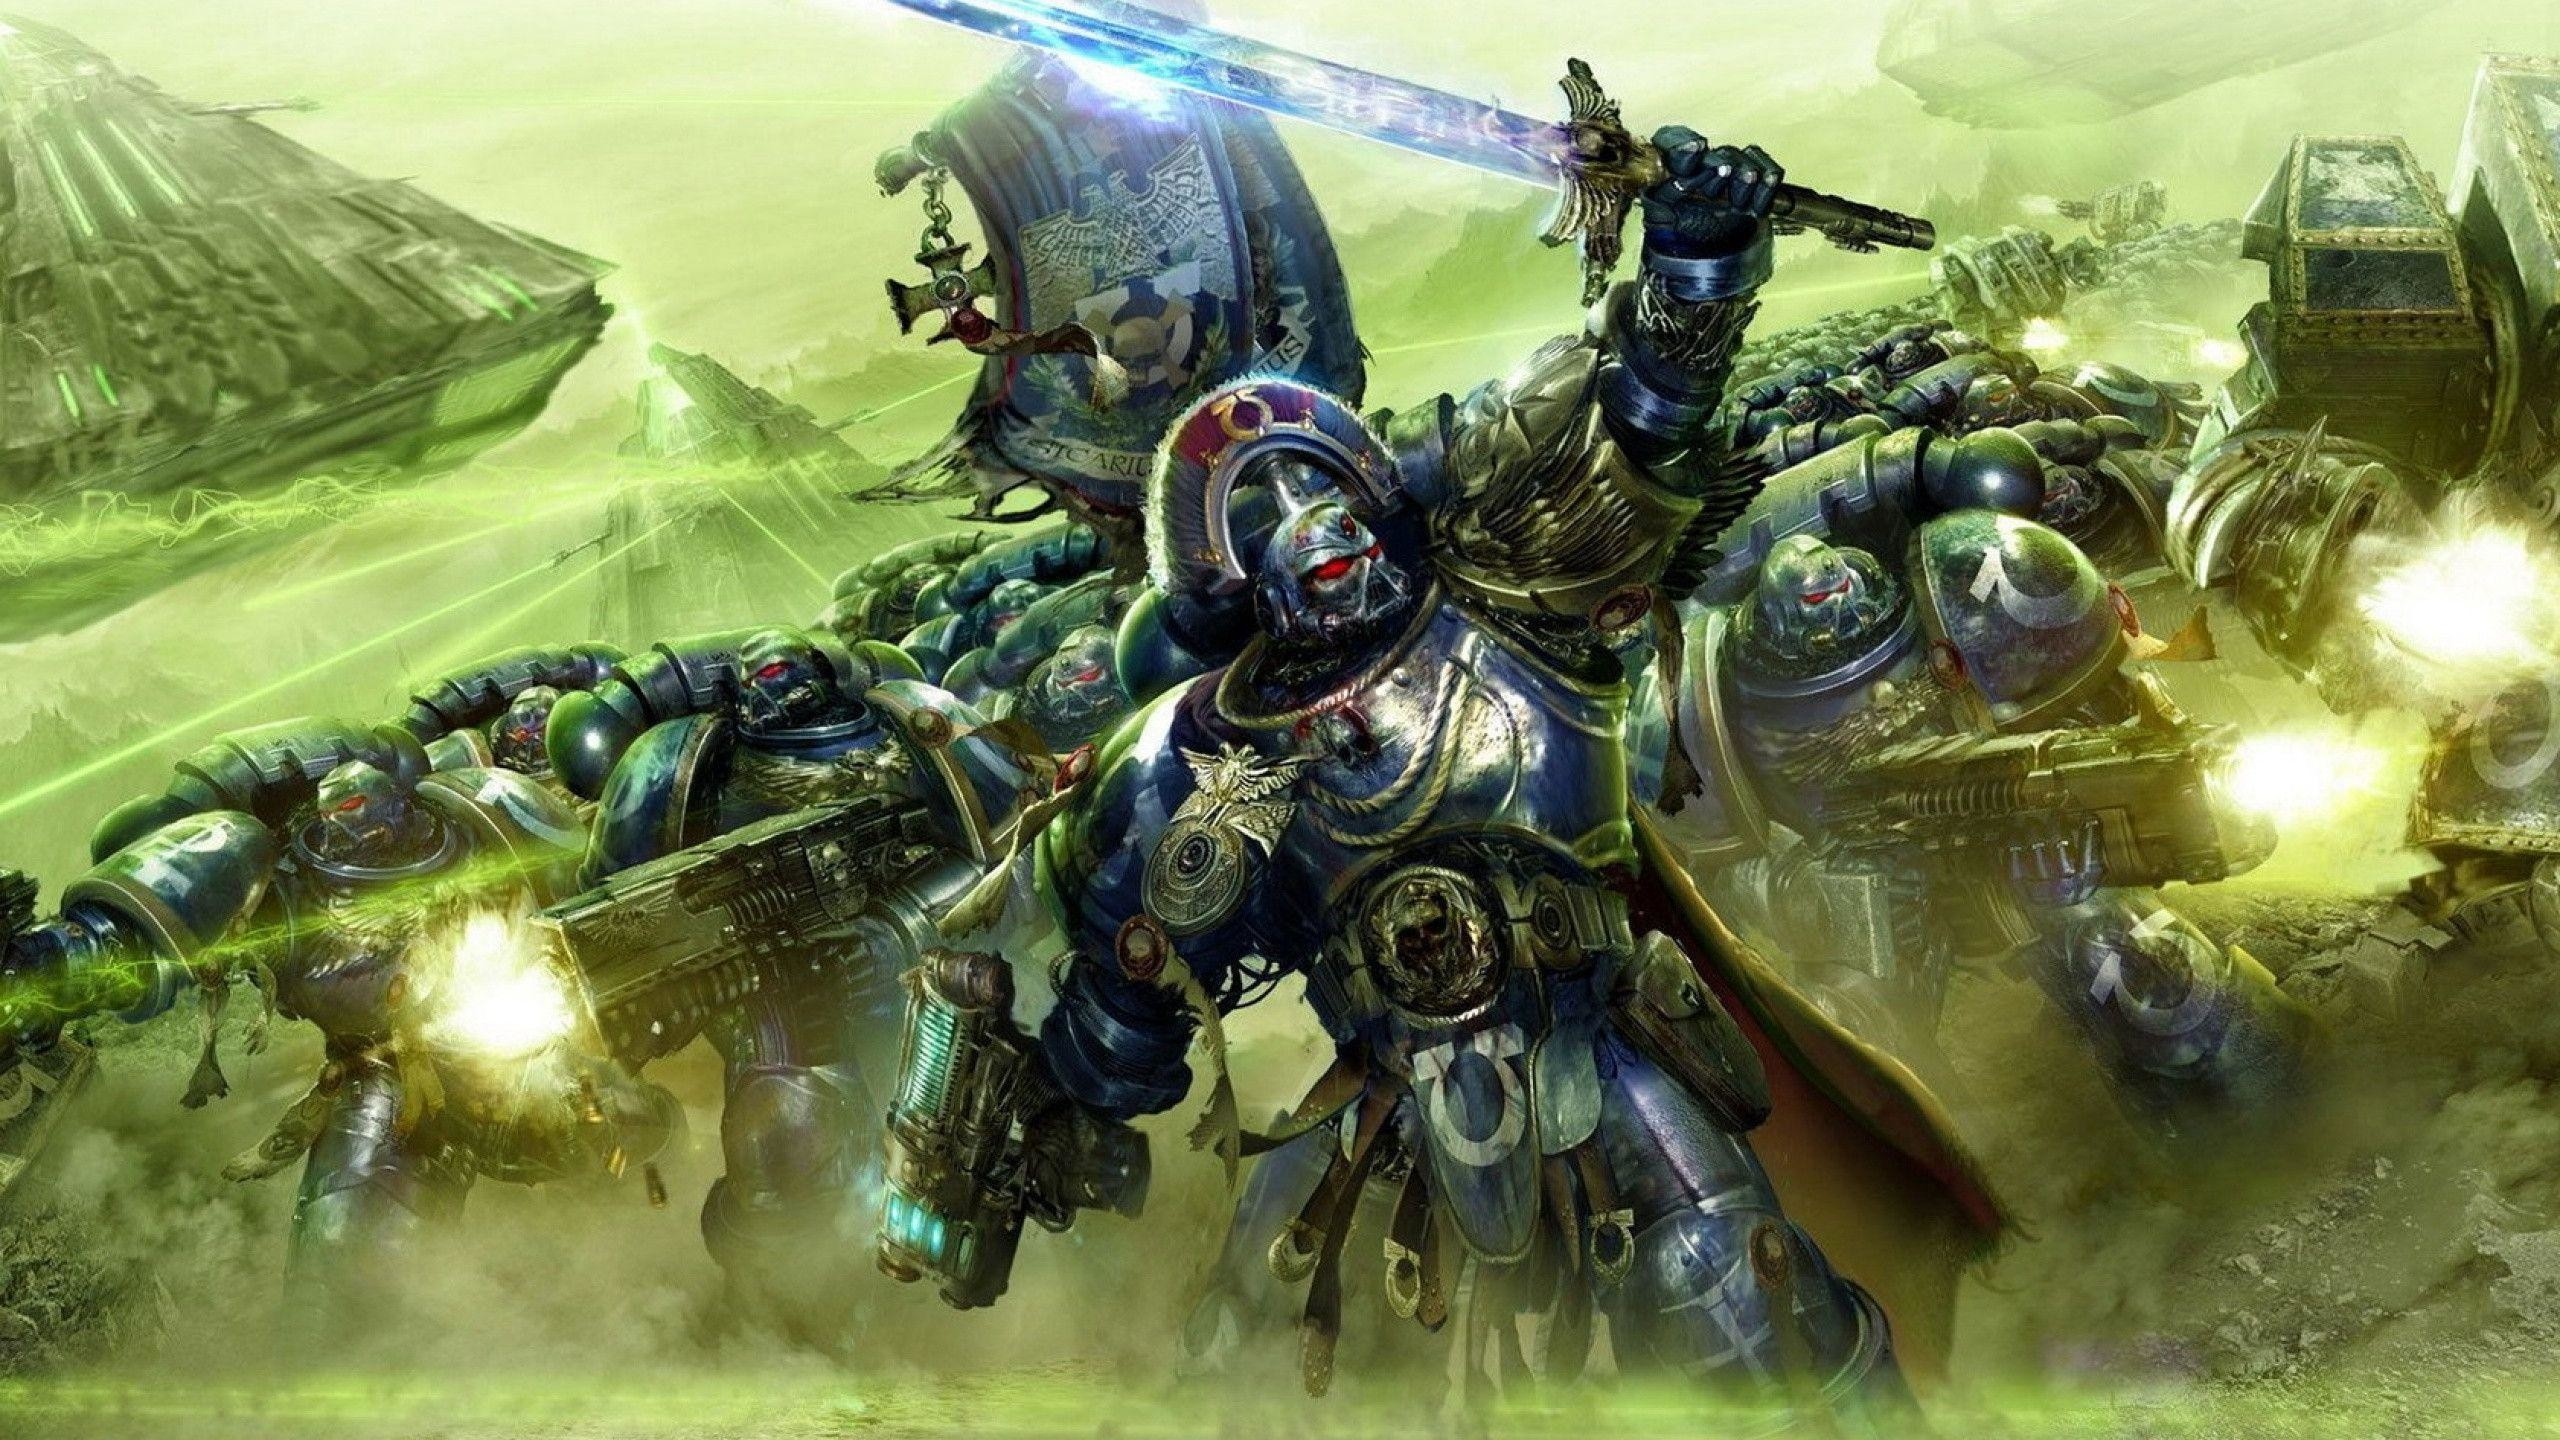 Res: 2560x1440, Space Marine Wallpaper